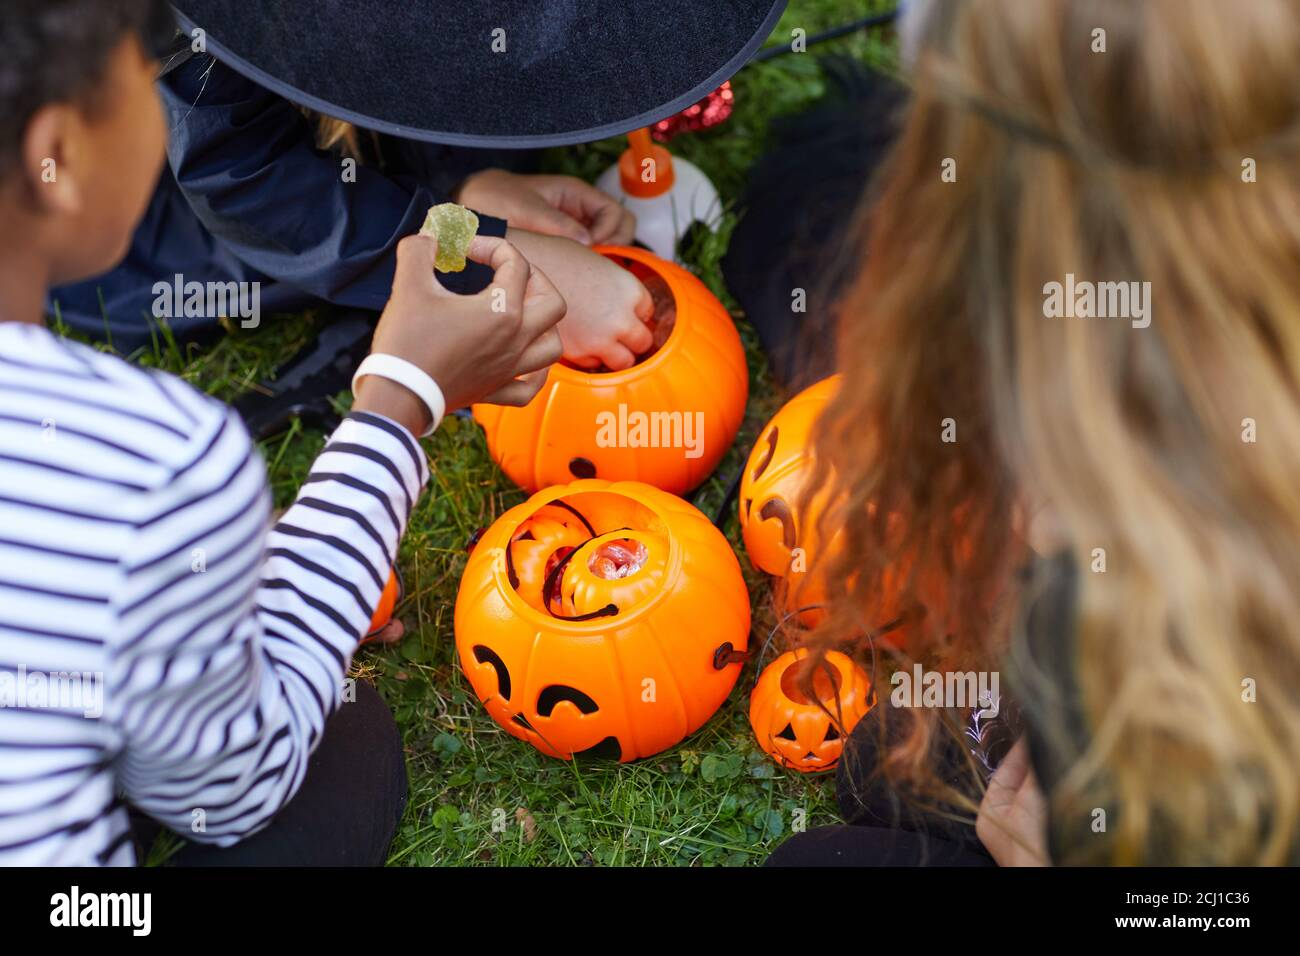 High angle view at group of kids wearing costumes taking candy from Halloween buckets outdoors, copy space Stock Photo